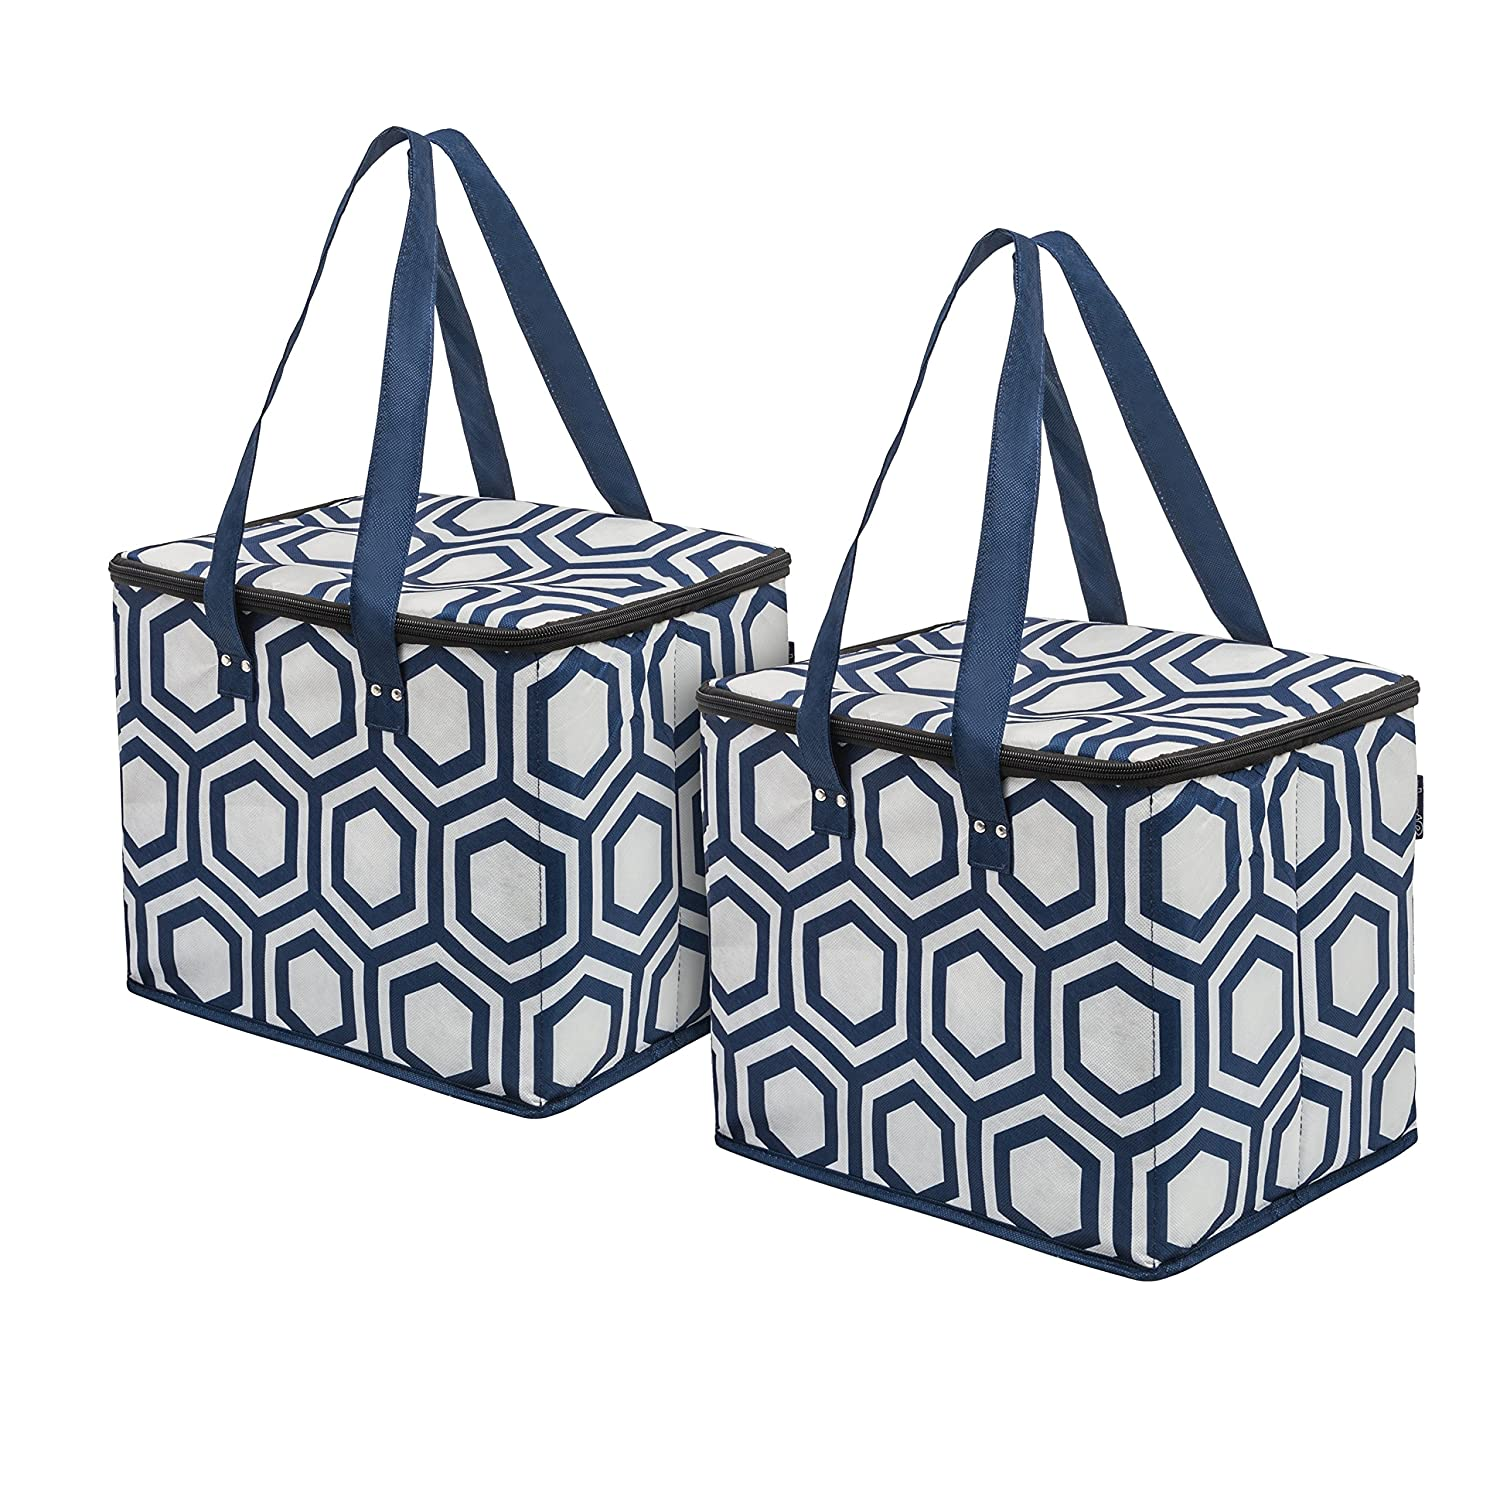 Planet E Reusable Grocery Shopping Bags – Large折りたたみボックスwith Reinforced Bottomsリサイクルプラスチック製(パックof 3 ) ブルー H1289_CooS2_AST B074QTJMBW Navy Hex Navy Hex